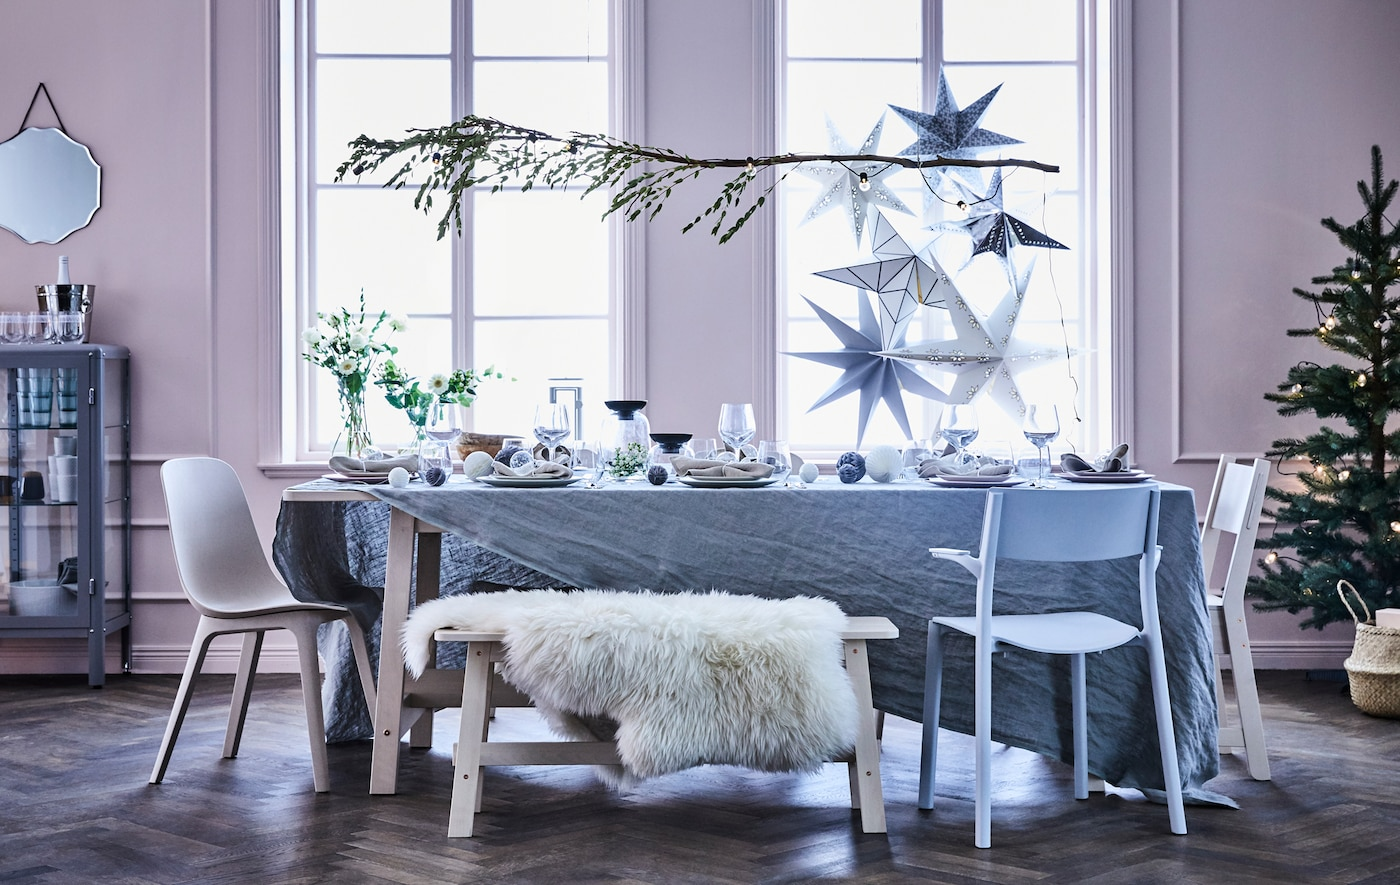 Plan a holiday potluck in your living room! IKEA offers modern dining room furniture, tables and seating options. Why not try NORRÅKER bench in white birch? If you have kids there's less risk they'll hit their head as the bench has rounded corners.